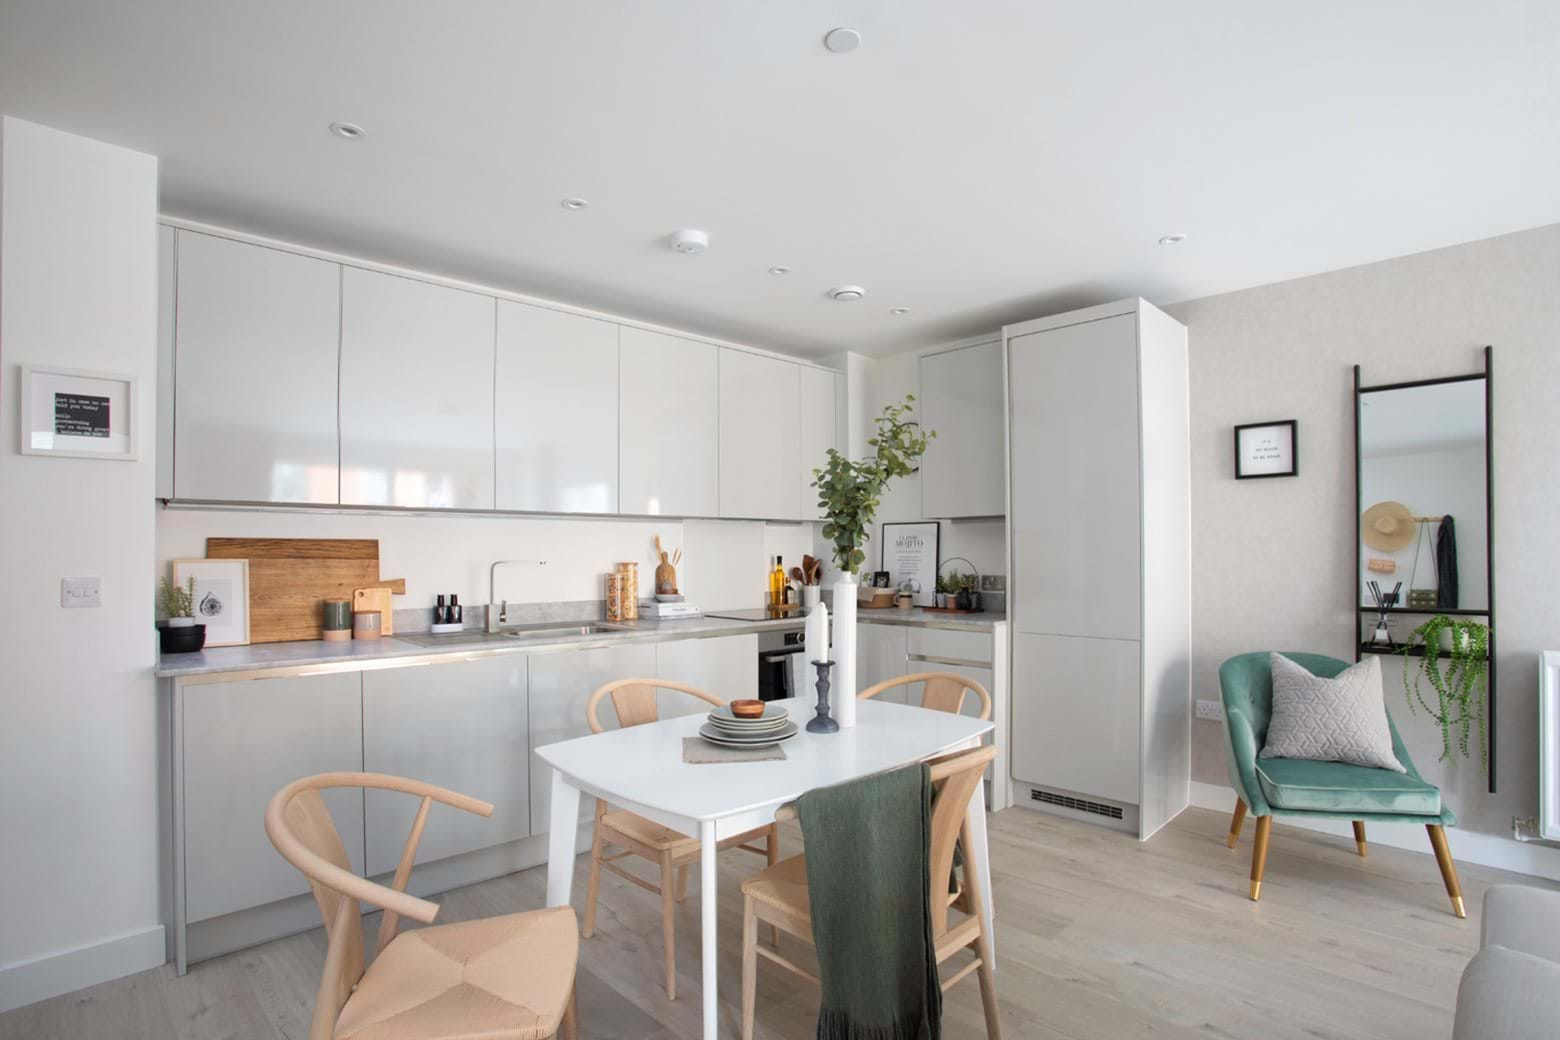 Colindale Gardens - Rent to Buy Kitchen